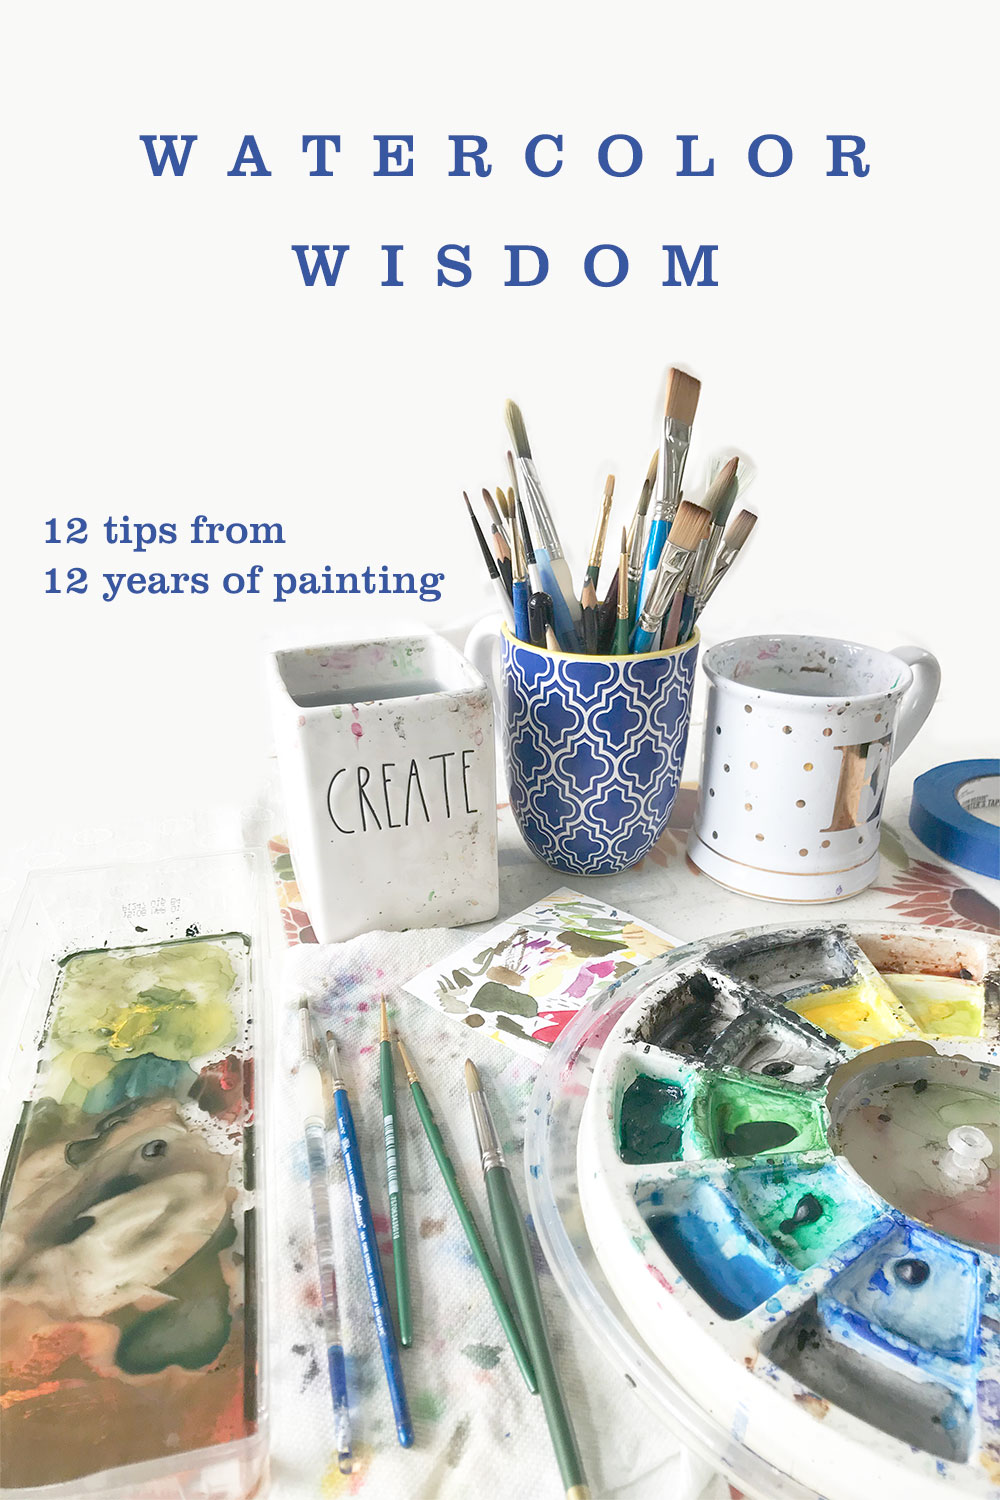 Watercolor Wisdom - 12 tips from 12 years of painting